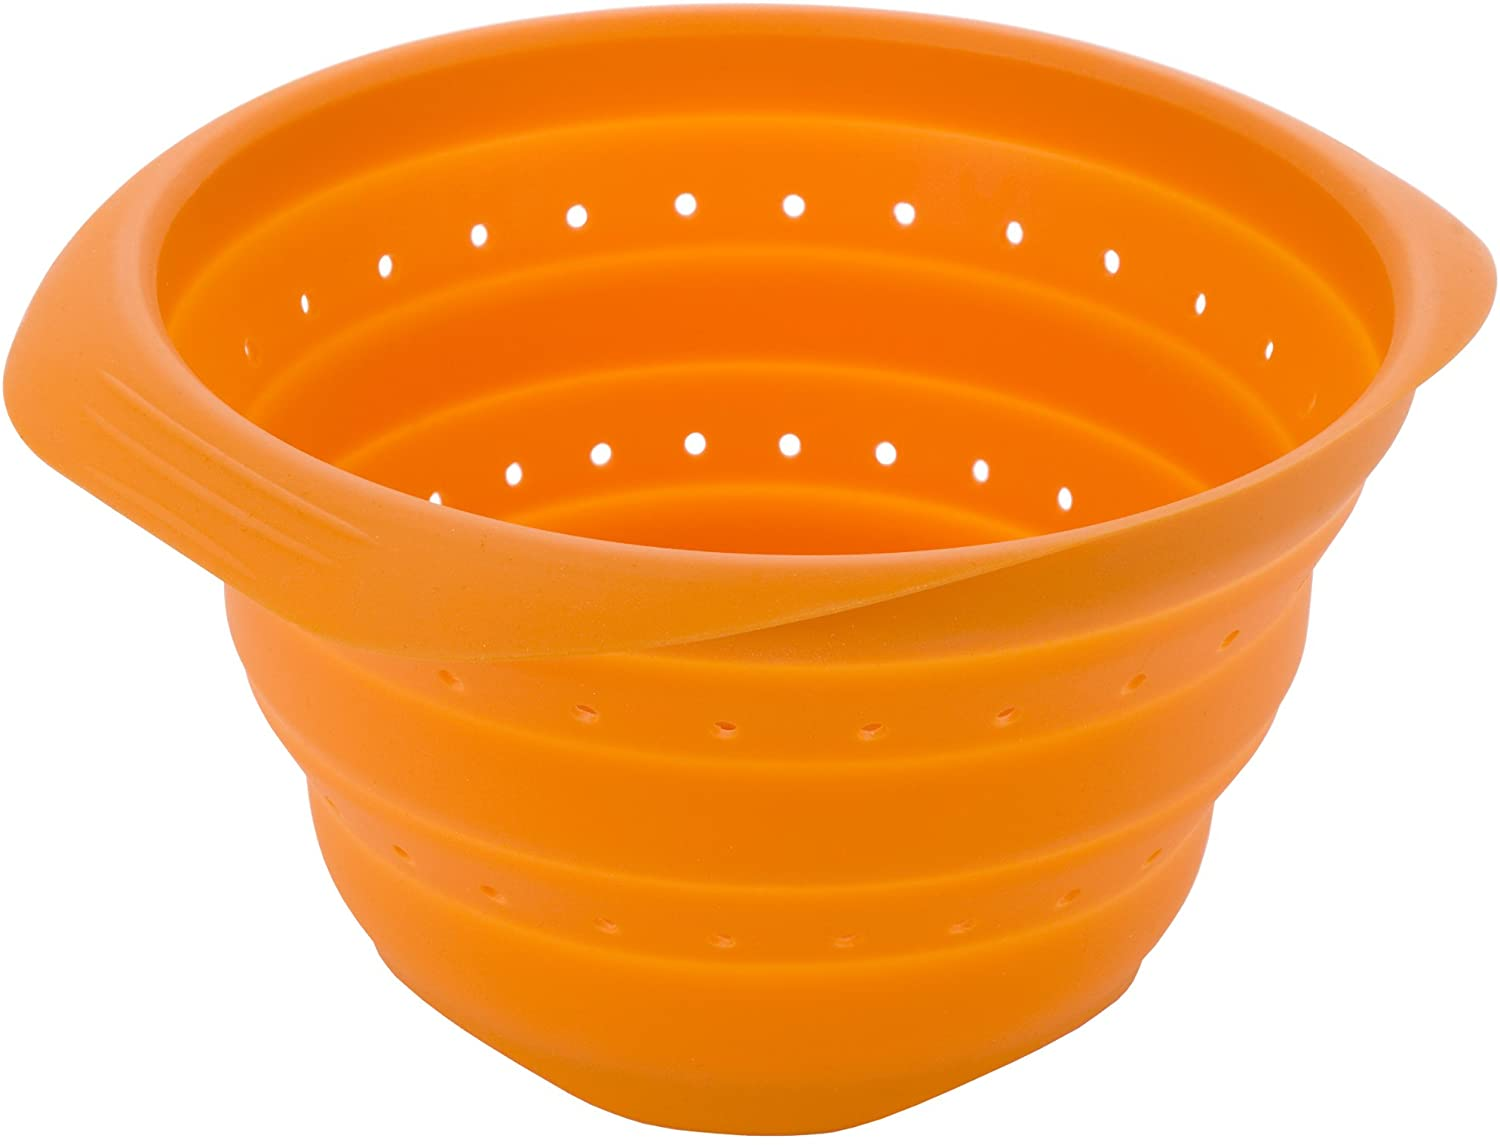 MIU France 11-Inch Collapsible Silicone Colander, Orange